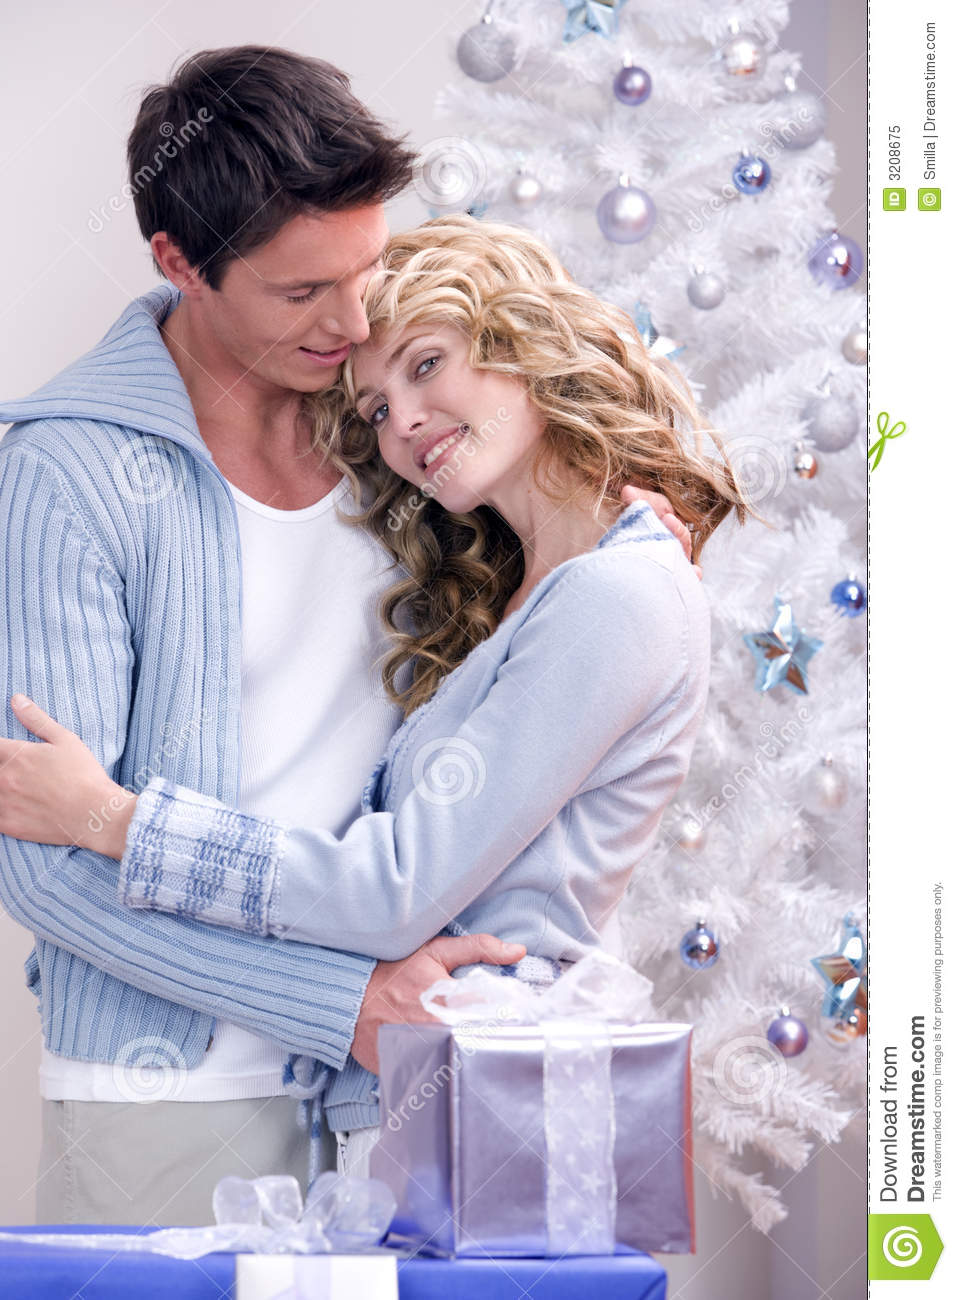 A Loving Christmas Couple Stock Image Image Of Time